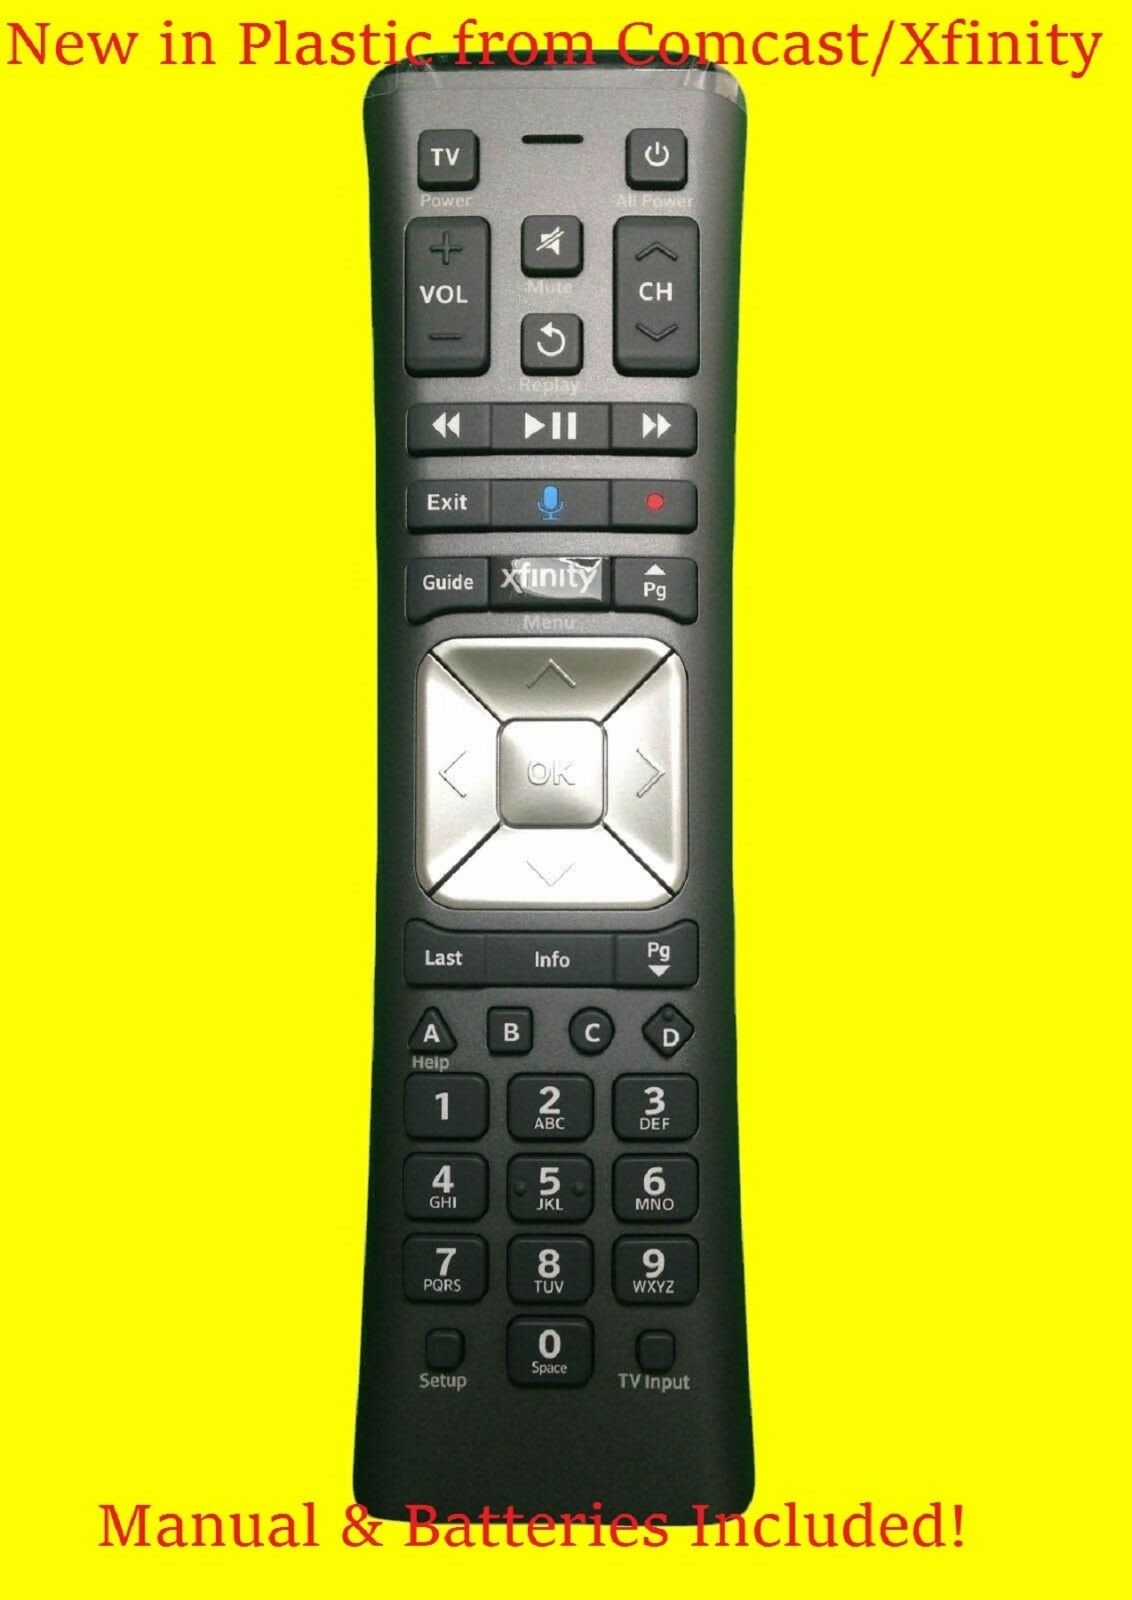 Comcast Legacy Remote Control Box - Year of Clean Water